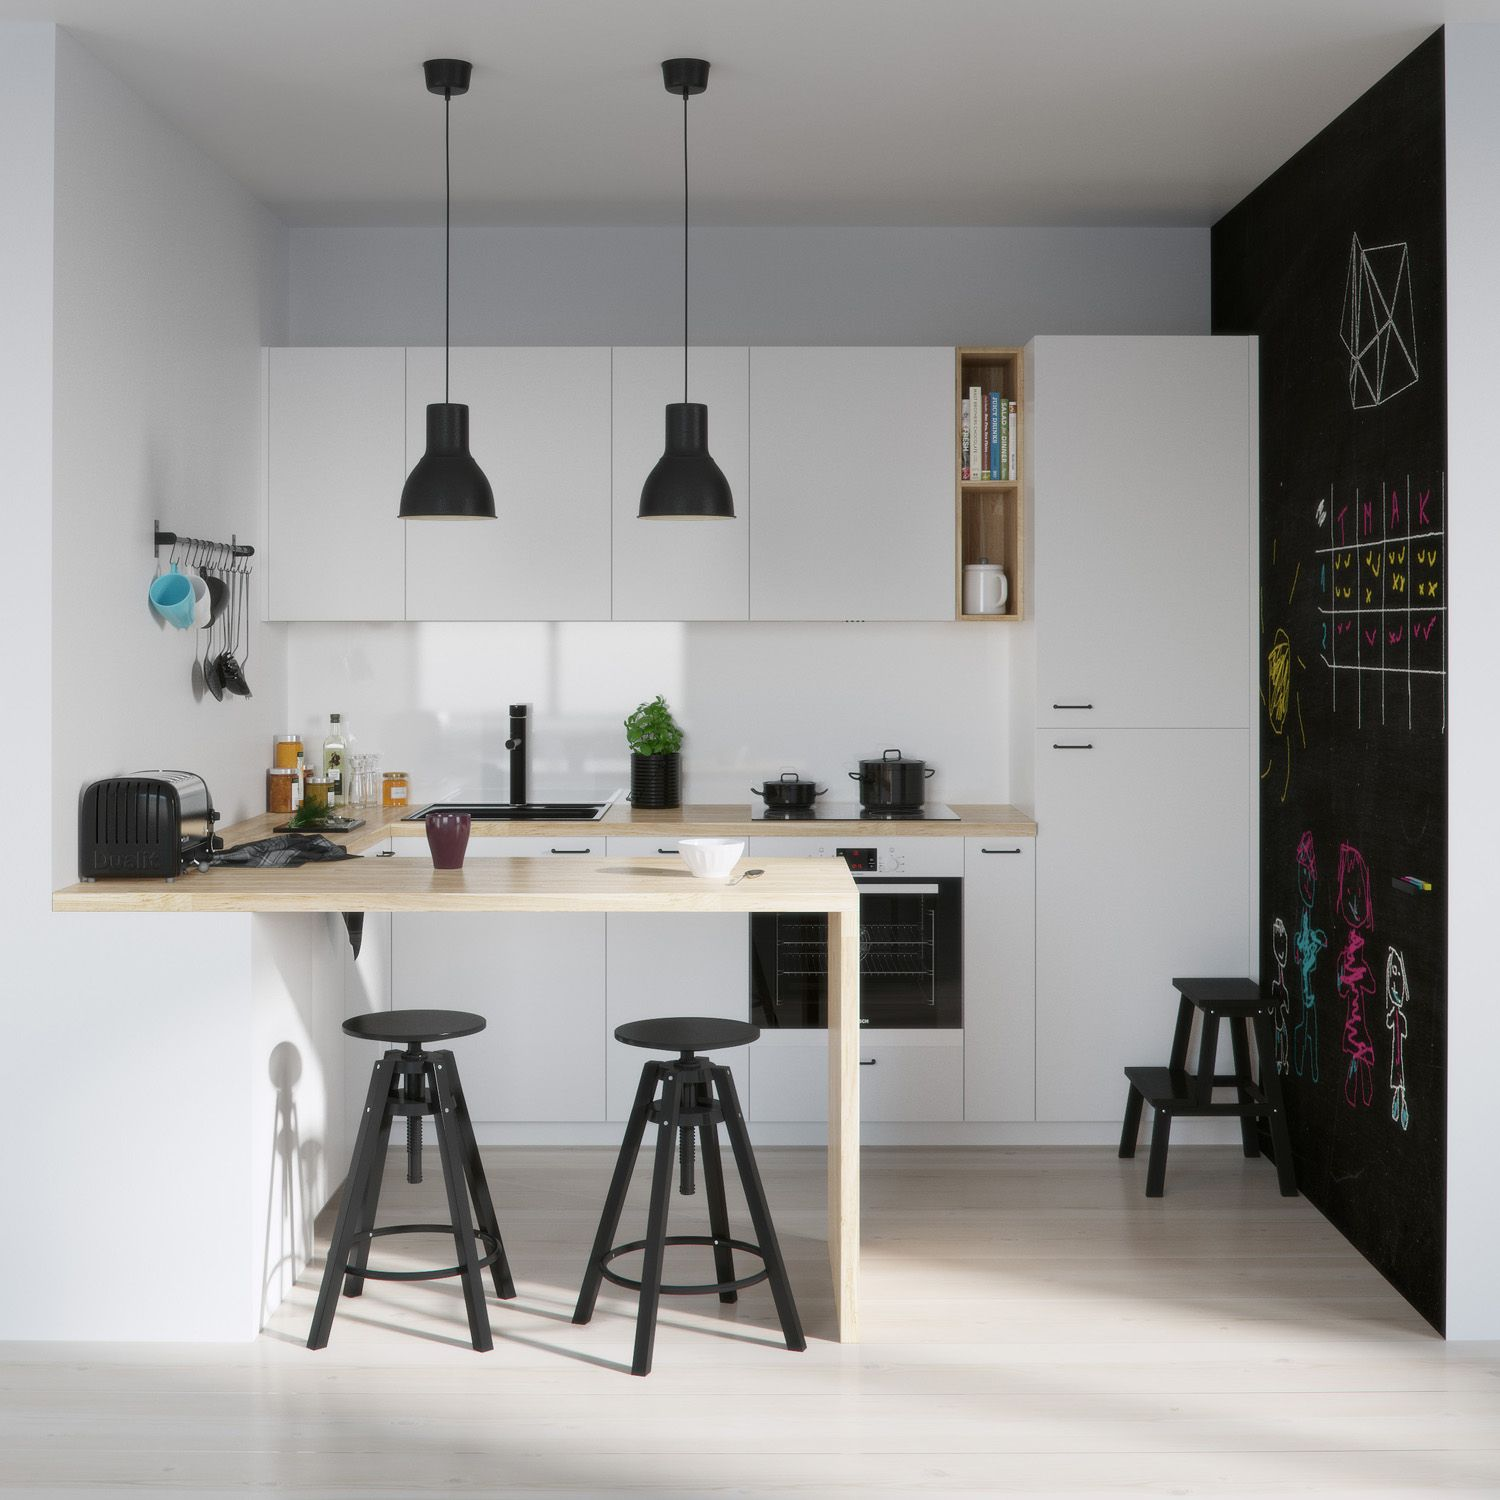 Ikea Kitchen - Tomek Michalski - Design | Visualization | 3d Art ...